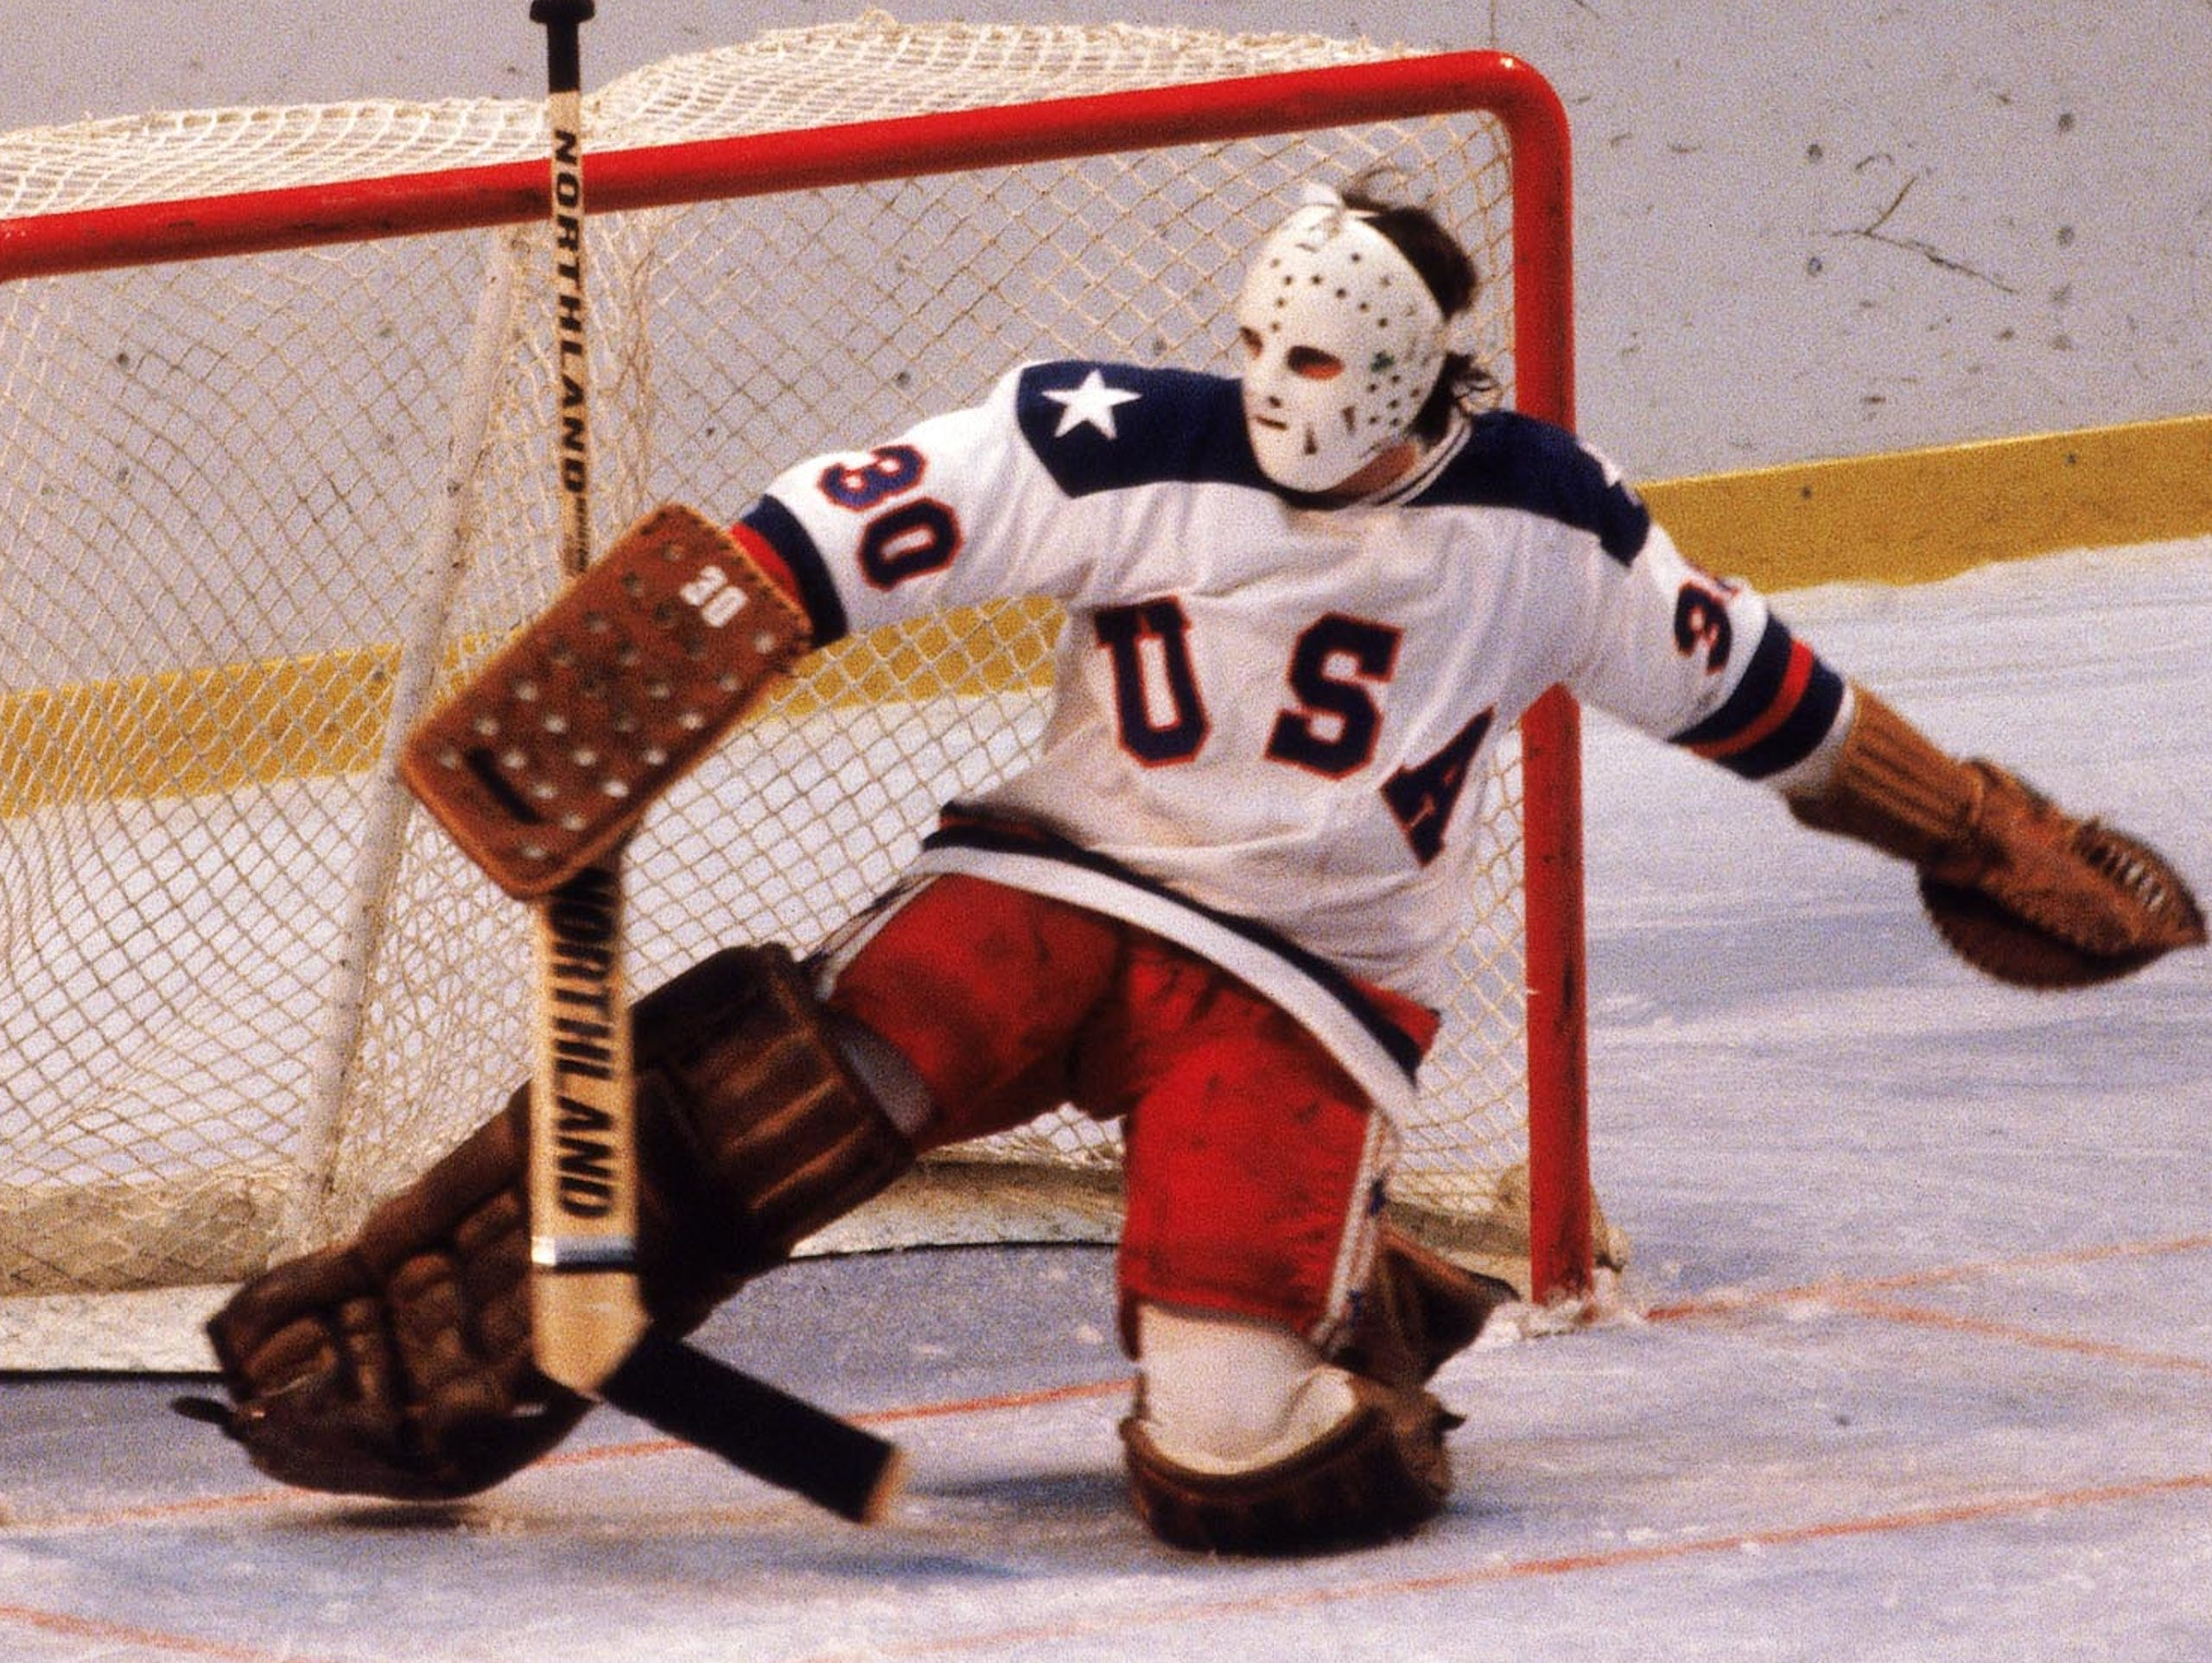 Goalie Jim Craig upset the Soviet Union in the Miracle